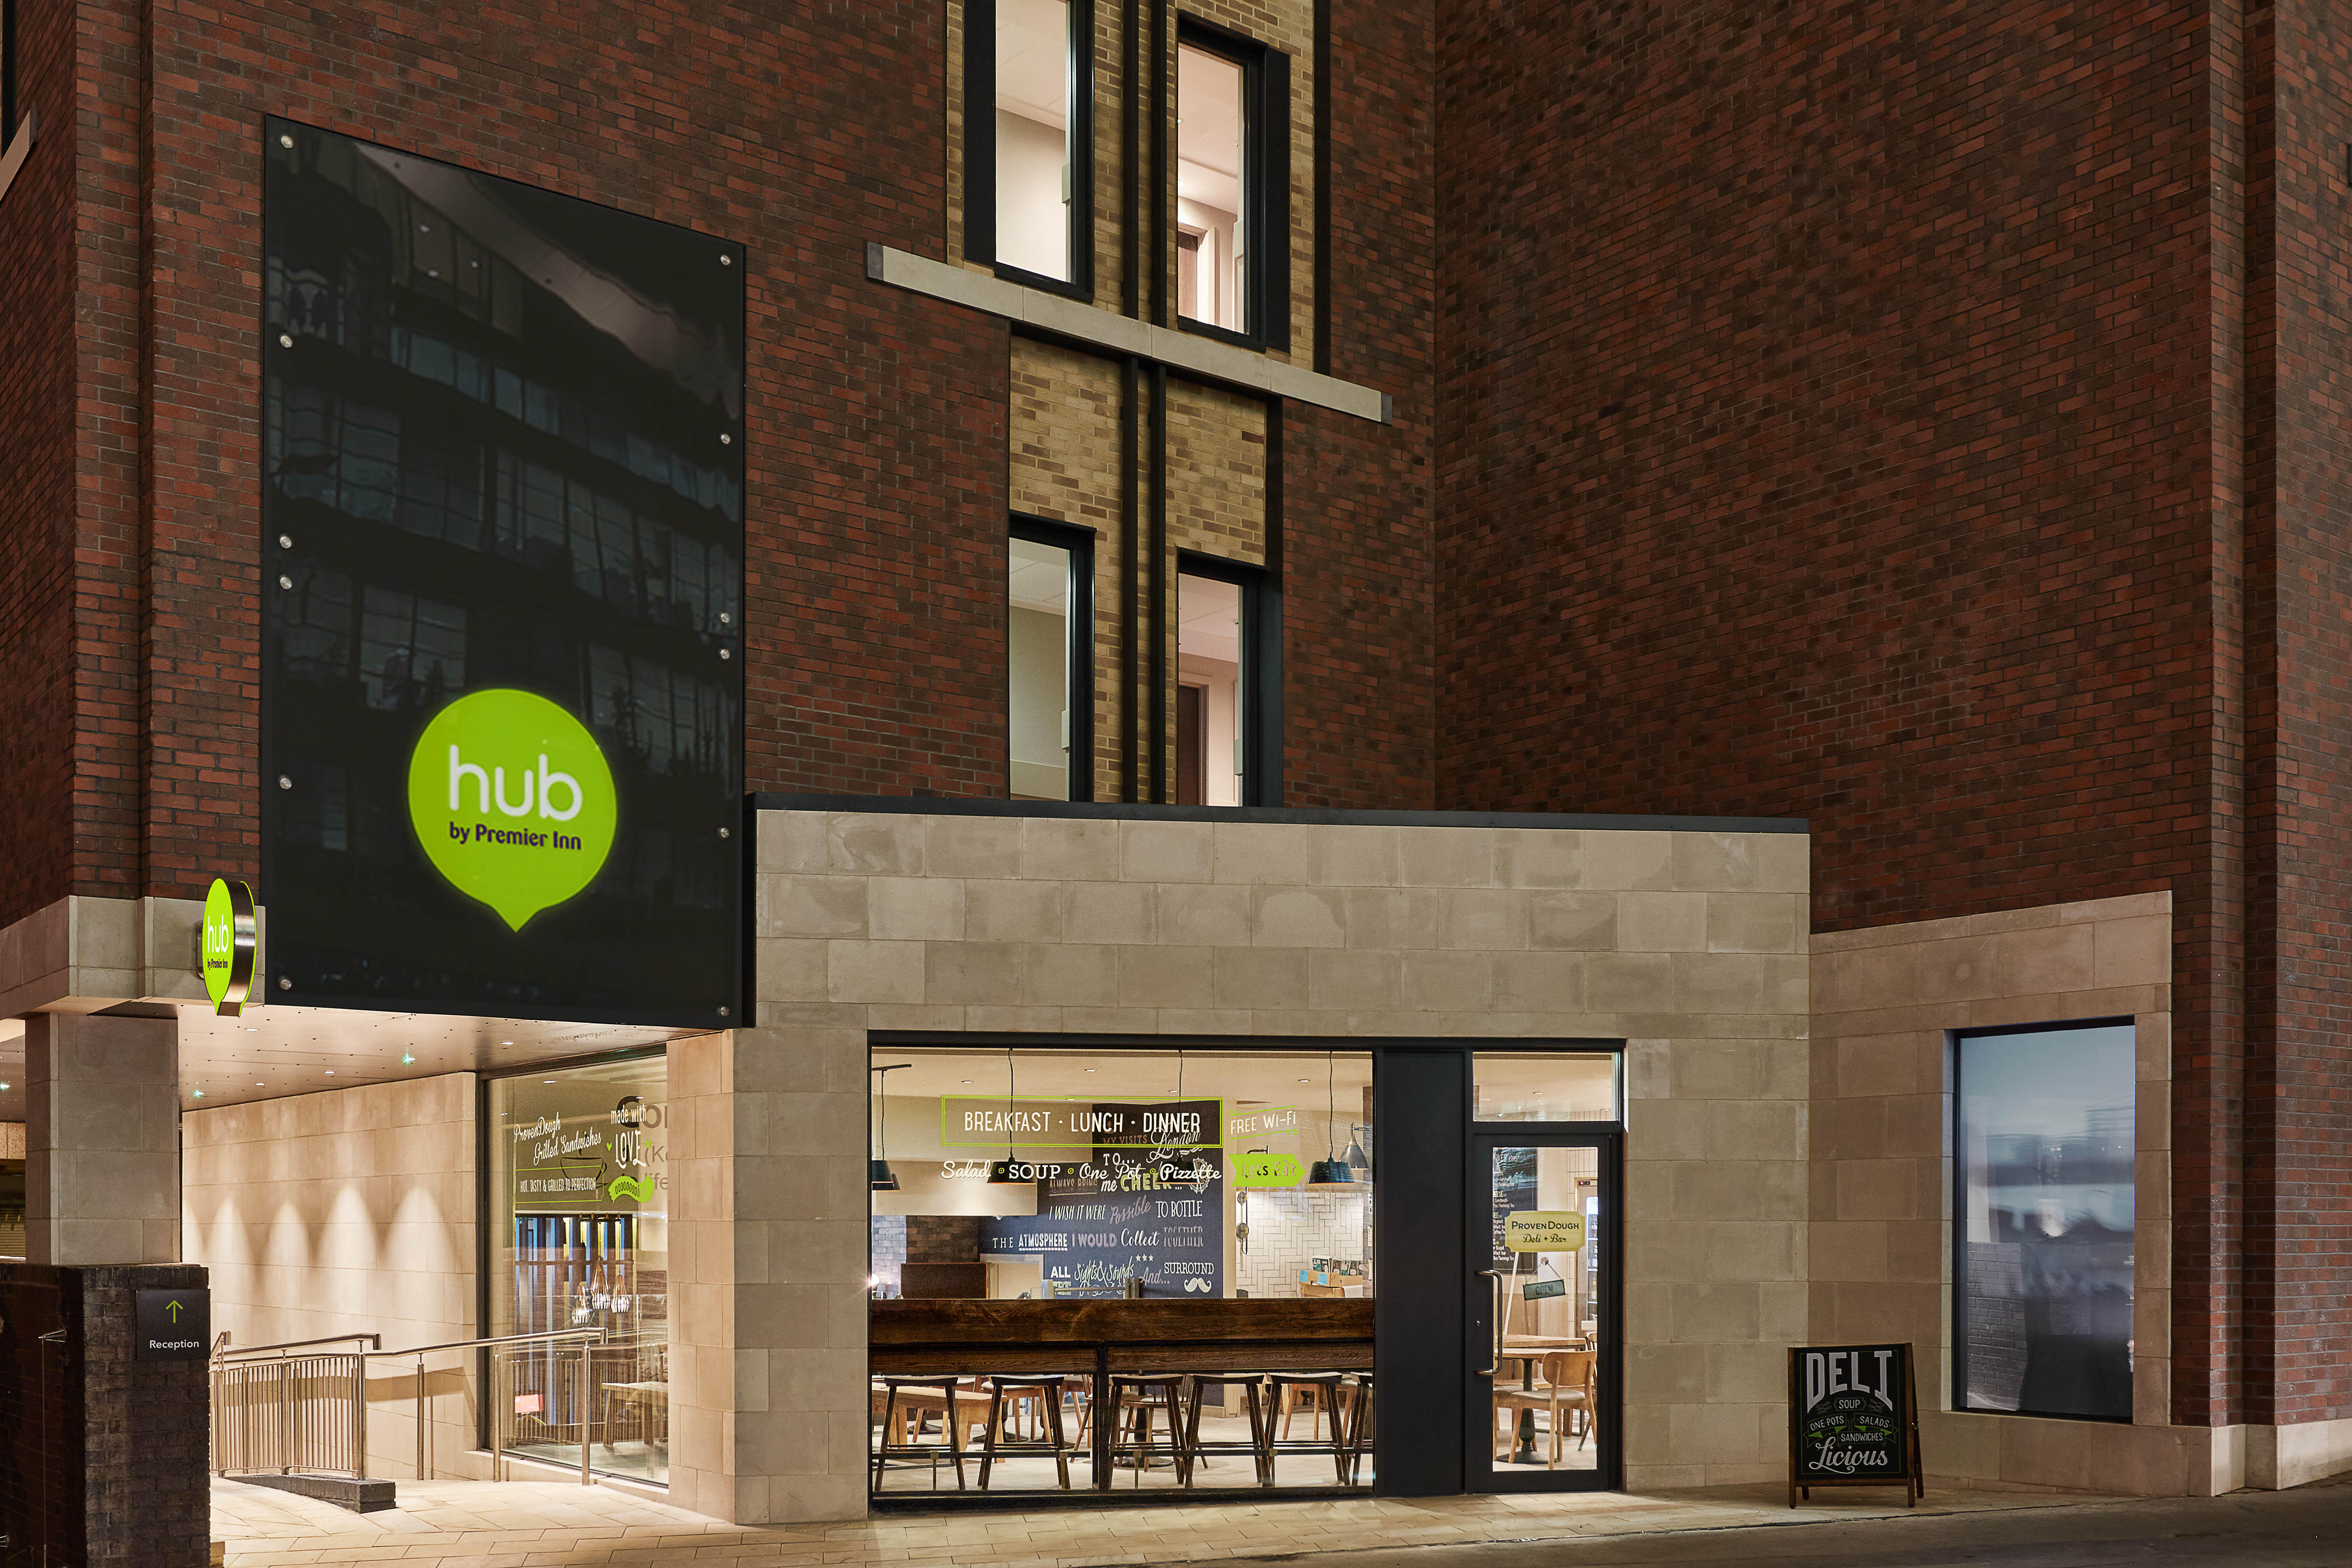 hub by Premier Inn London Tower Bridge hotel